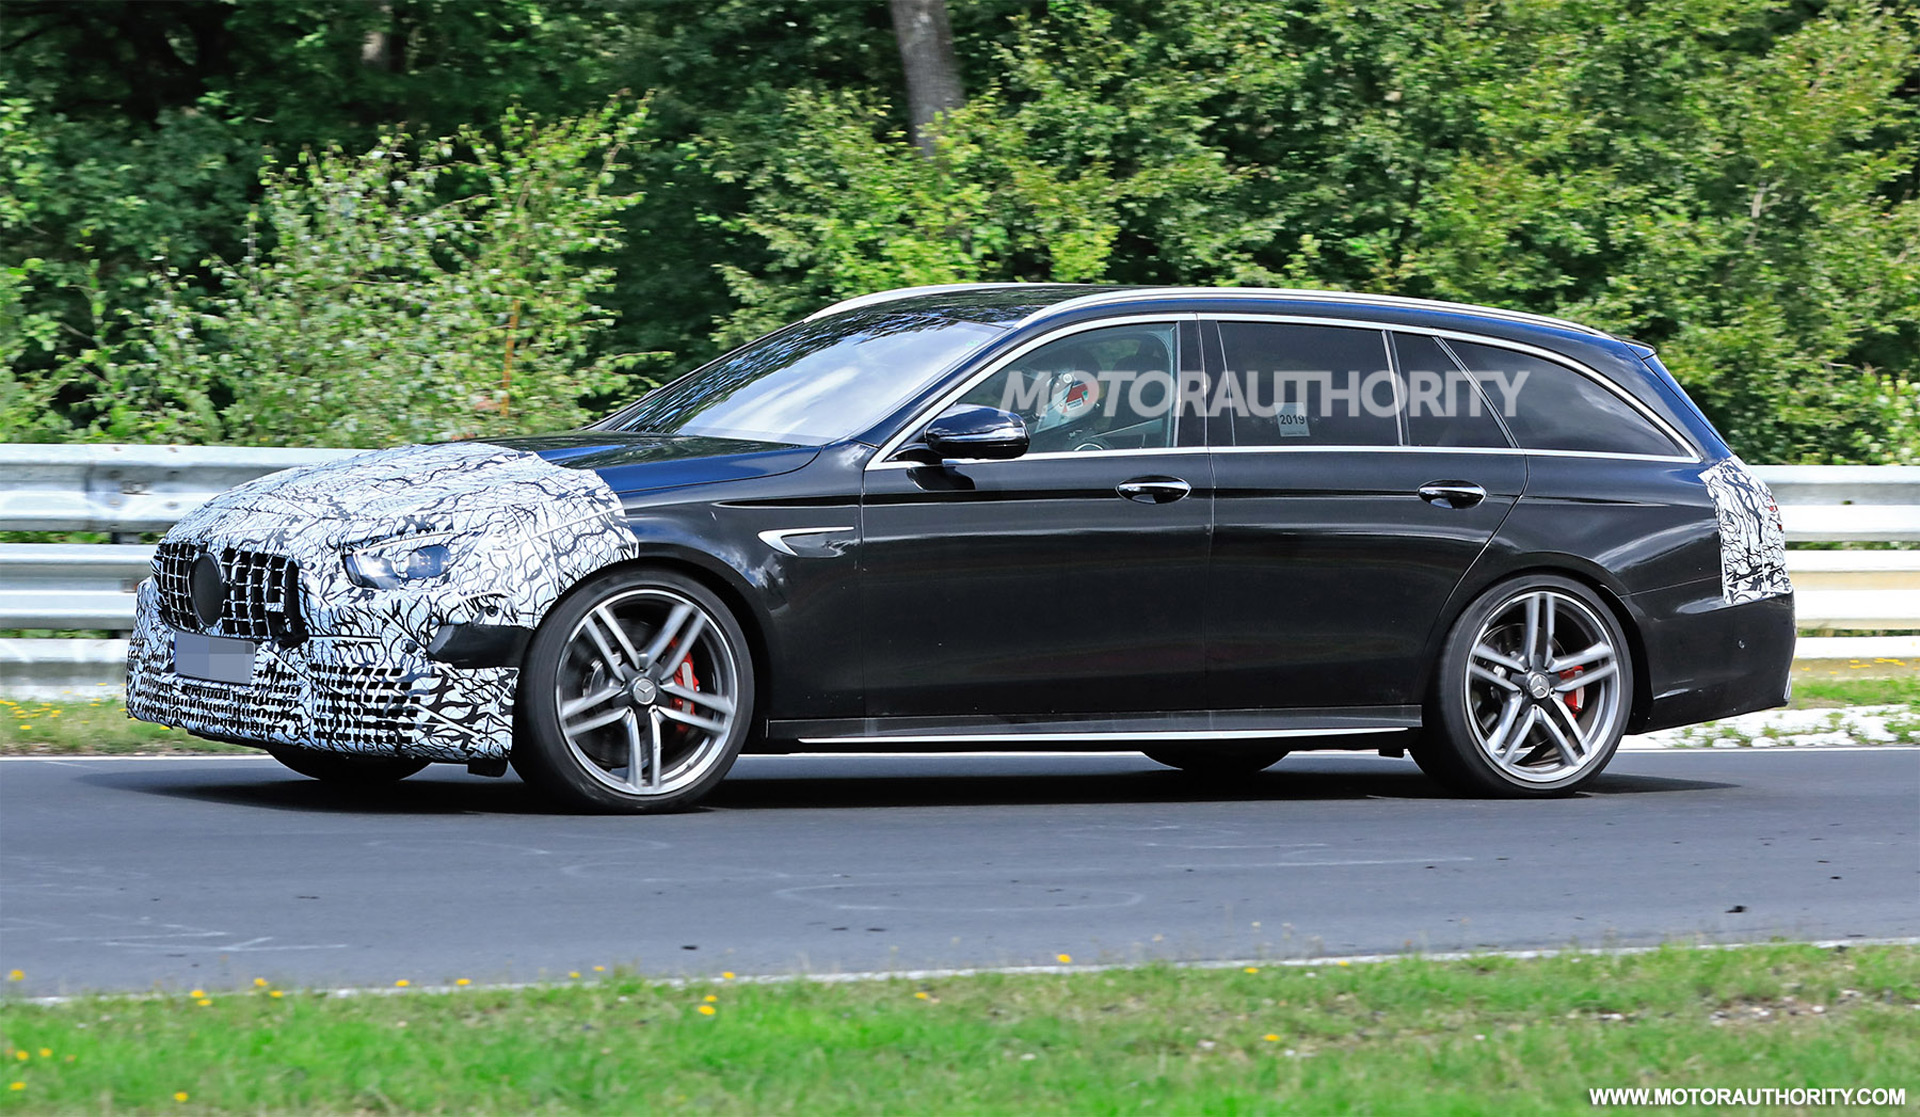 2020 - [Mercedes-Benz] Classe E restylée  - Page 2 2021-mercedes-amg-e63-wagon-facelift-spy-shots--photo-credit-s-baldauf-sb-medien_100711682_h